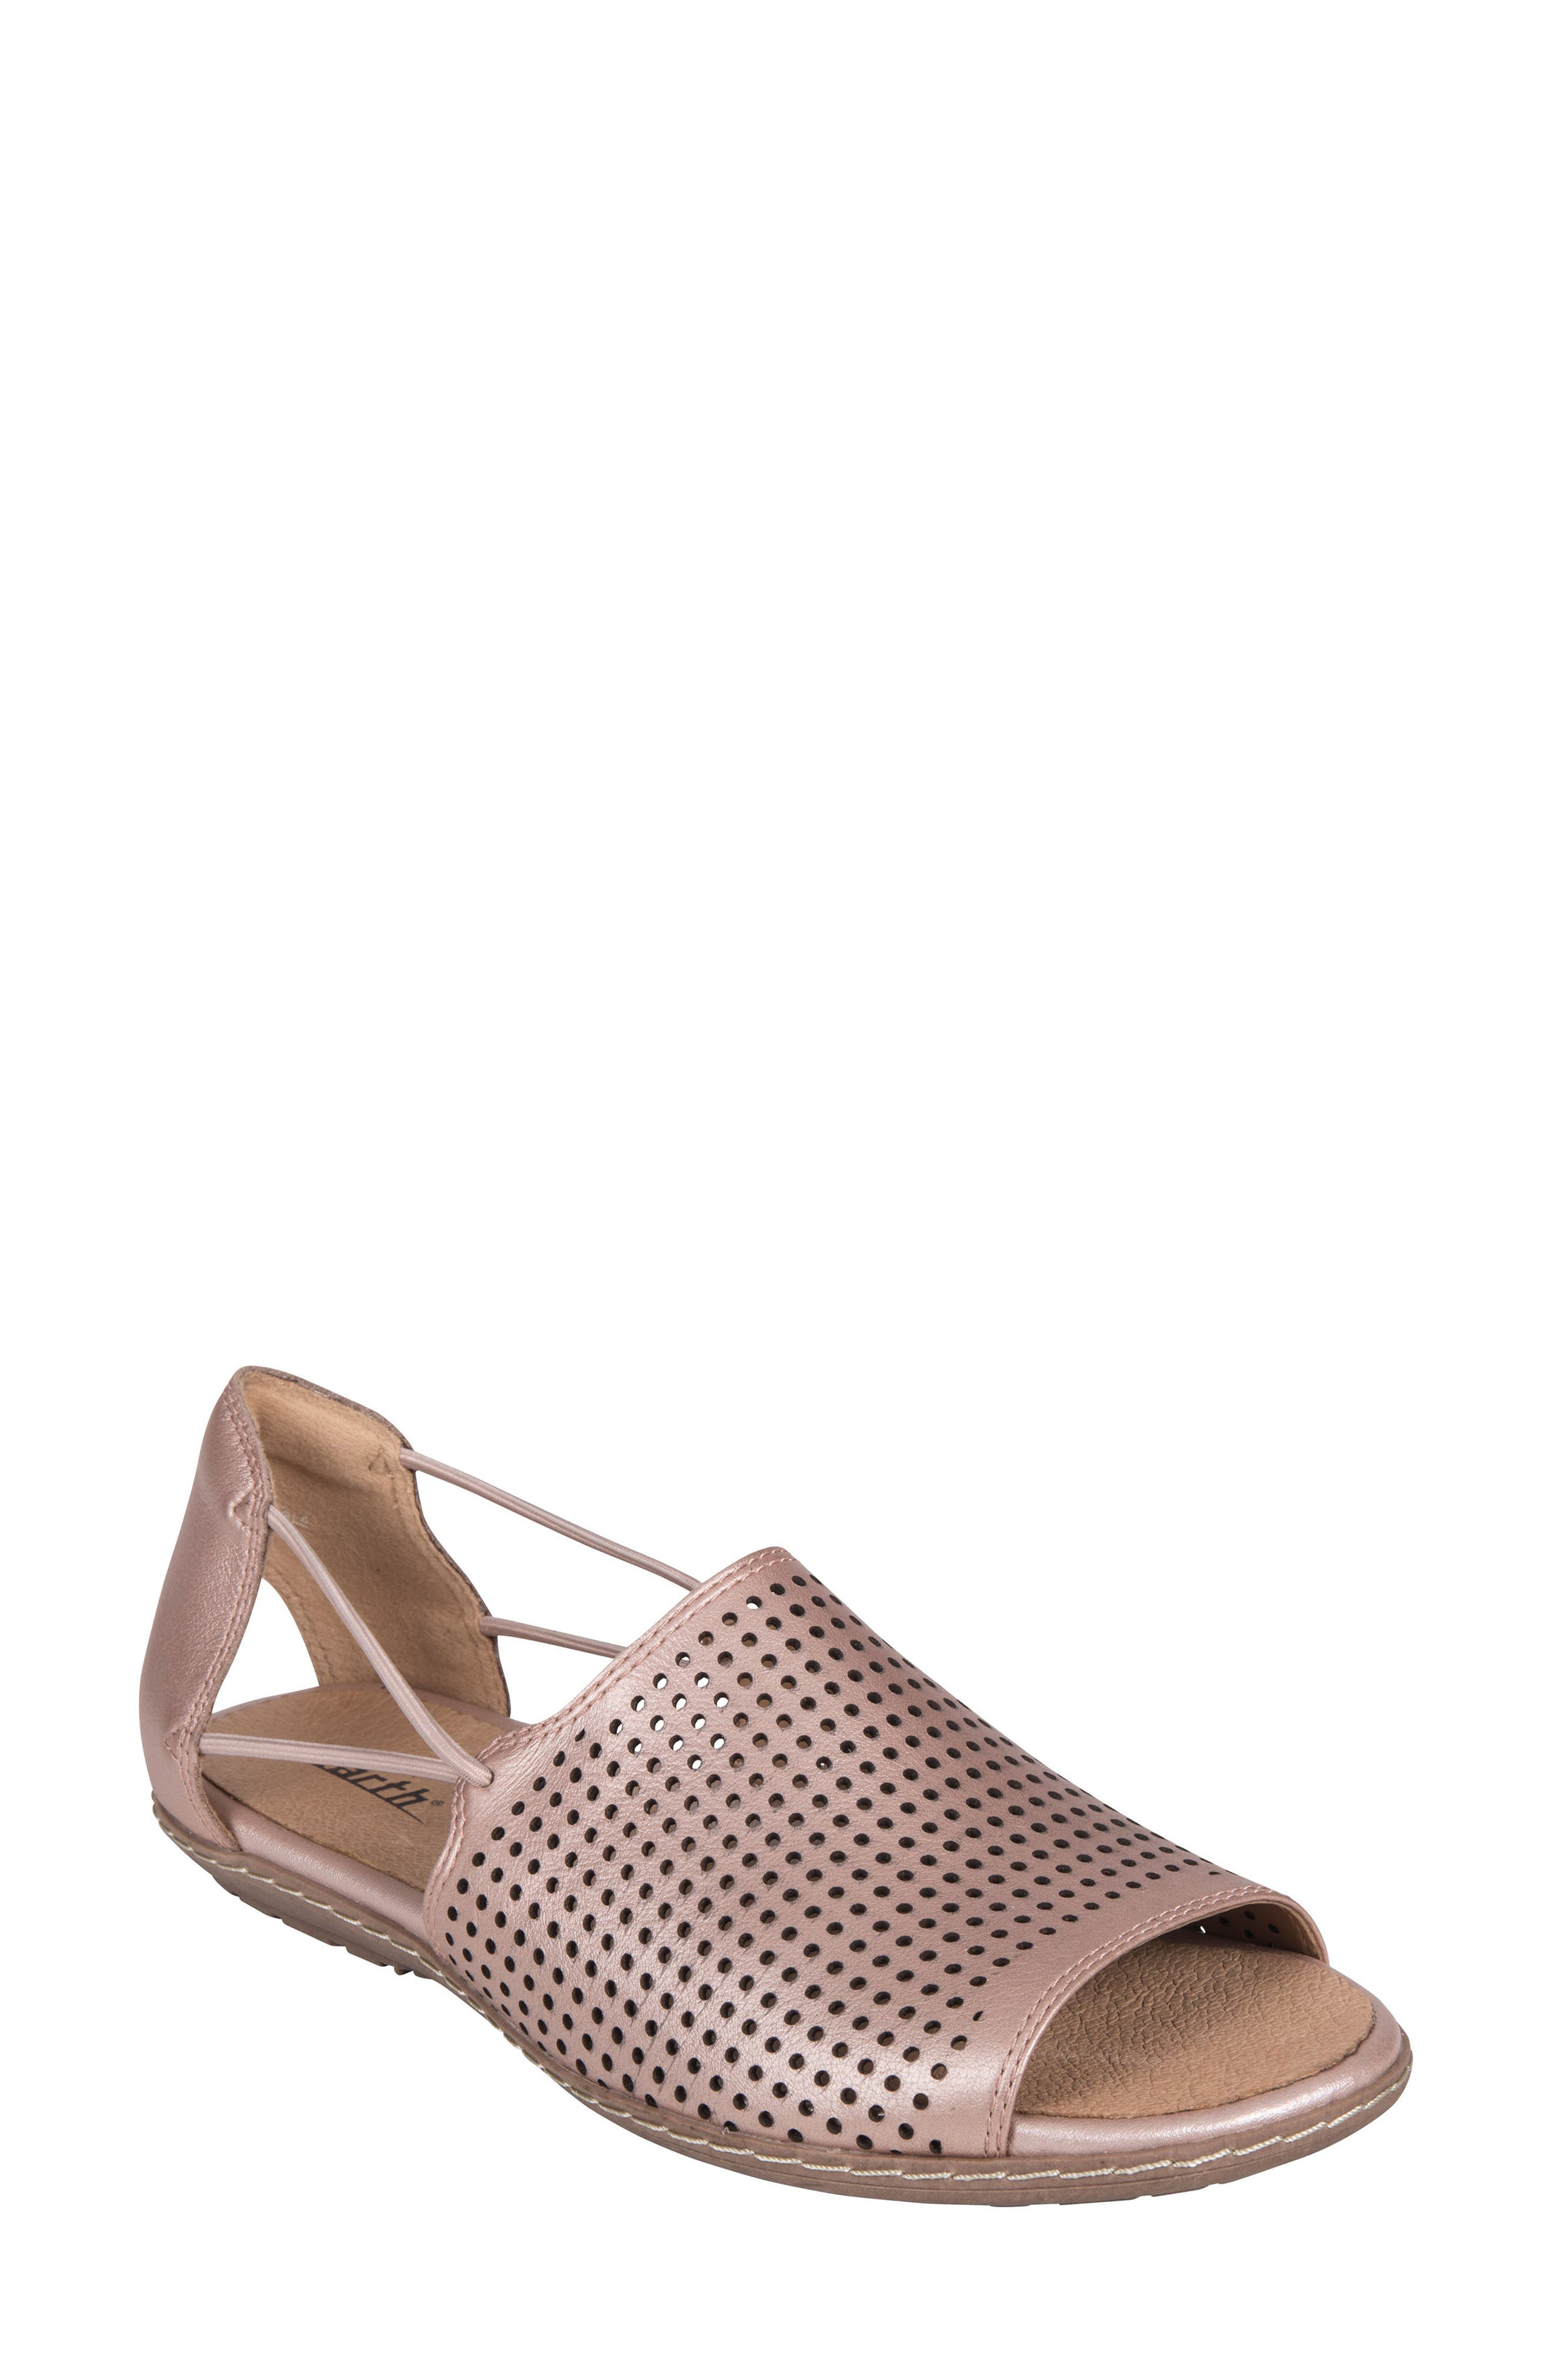 Shelly Sandal,                             Main thumbnail 1, color,                             BLUSH METALLIC LEATHER